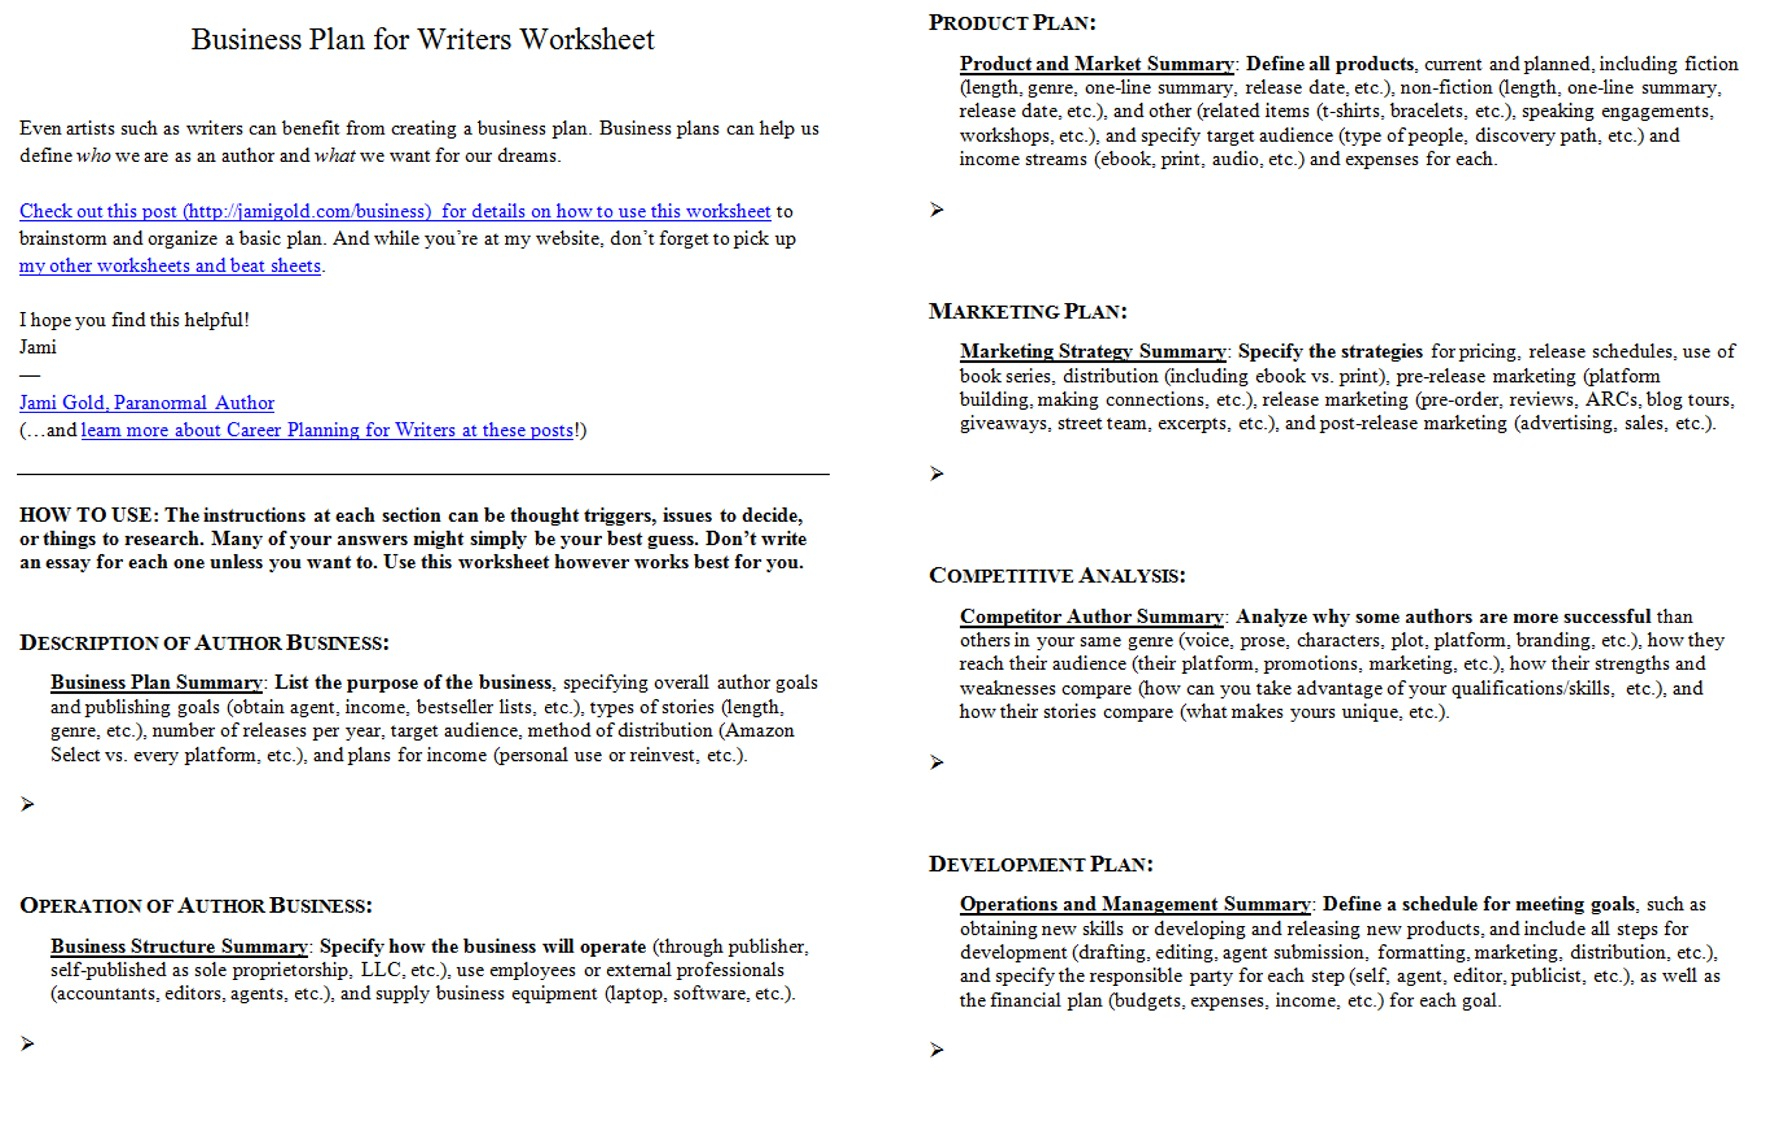 Aldiablosus  Unusual Worksheets For Writers  Jami Gold Paranormal Author With Licious Screen Shot Of Both Pages Of The Business Plan For Writers Worksheet With Enchanting Swimming Merit Badge Worksheet Answers Also Spanish Food Worksheets In Addition Idoc Verification Worksheet And Simplifying Equations Worksheets As Well As Healthy Relationship Boundaries Worksheets Additionally Blending Words Worksheets From Jamigoldcom With Aldiablosus  Licious Worksheets For Writers  Jami Gold Paranormal Author With Enchanting Screen Shot Of Both Pages Of The Business Plan For Writers Worksheet And Unusual Swimming Merit Badge Worksheet Answers Also Spanish Food Worksheets In Addition Idoc Verification Worksheet From Jamigoldcom